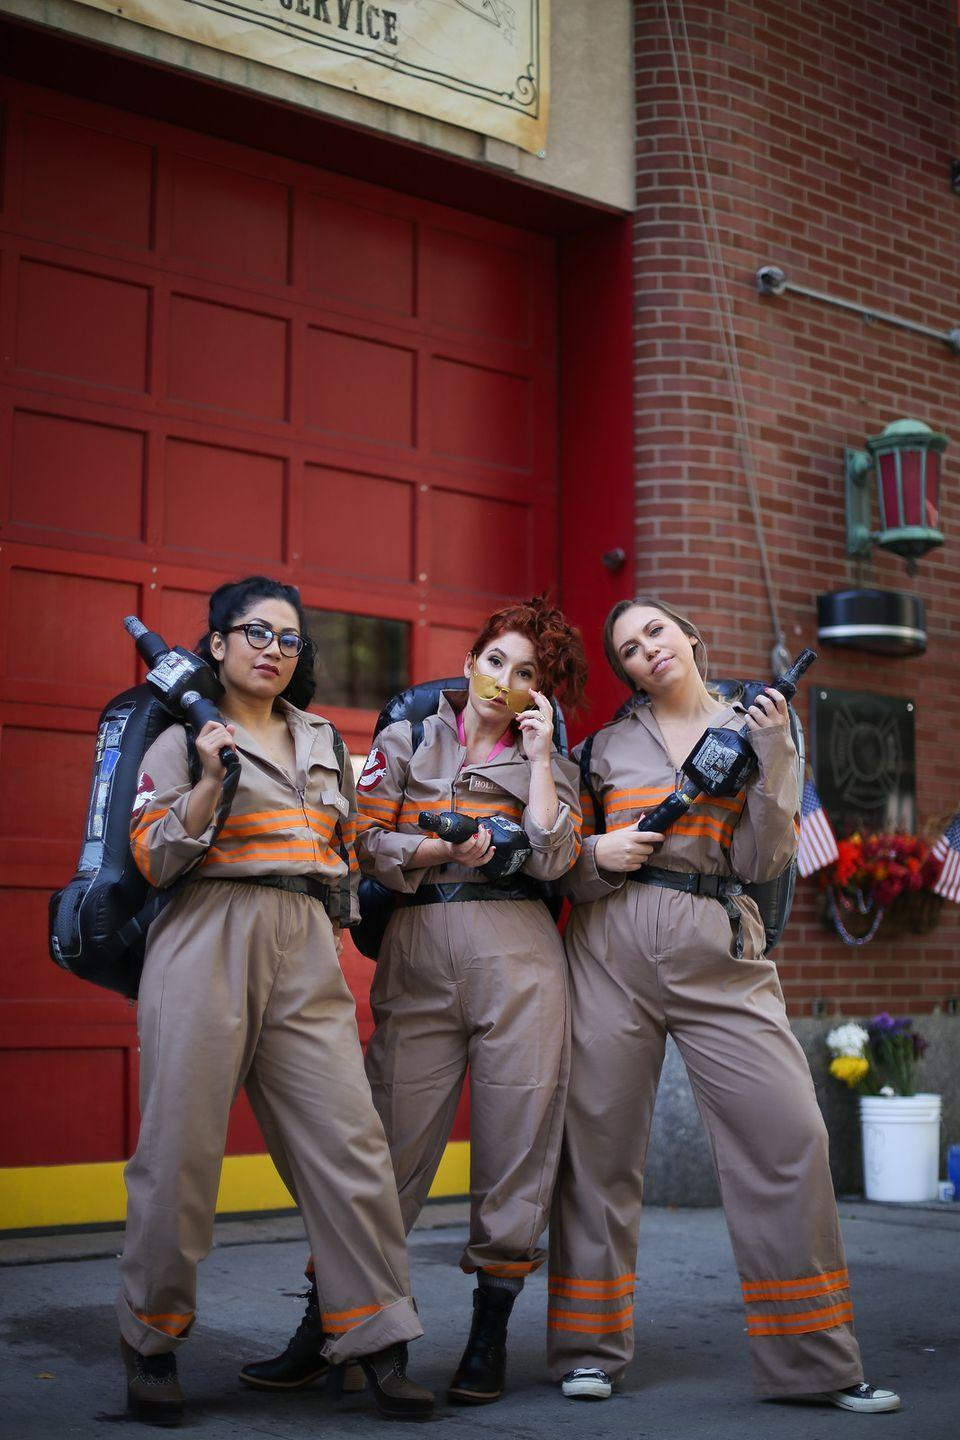 """<p>C'mon! Who ya gonna call? You and your pals will be ready to tackle any slimy, scary ghosts on the block with these costumes. </p><p><strong>Get the tutorial at </strong><strong><a href=""""http://livingaftermidnite.com/2019/10/group-halloween-costumes-that-will-win-you-best-dressed.html"""" rel=""""nofollow noopener"""" target=""""_blank"""" data-ylk=""""slk:Living after Midnite"""" class=""""link rapid-noclick-resp"""">Living after Midnite</a>.</strong></p><p><a class=""""link rapid-noclick-resp"""" href=""""https://www.amazon.com/Kolossus-Cotton-Blend-Sleeve-Coverall/dp/B07BK8S16J/ref=sr_1_5?dchild=1&keywords=tan+jumpsuits&qid=1591987705&sr=8-5&tag=syn-yahoo-20&ascsubtag=%5Bartid%7C10050.g.21349110%5Bsrc%7Cyahoo-us"""" rel=""""nofollow noopener"""" target=""""_blank"""" data-ylk=""""slk:SHOP TAN JUMPSUITS"""">SHOP TAN JUMPSUITS</a></p>"""